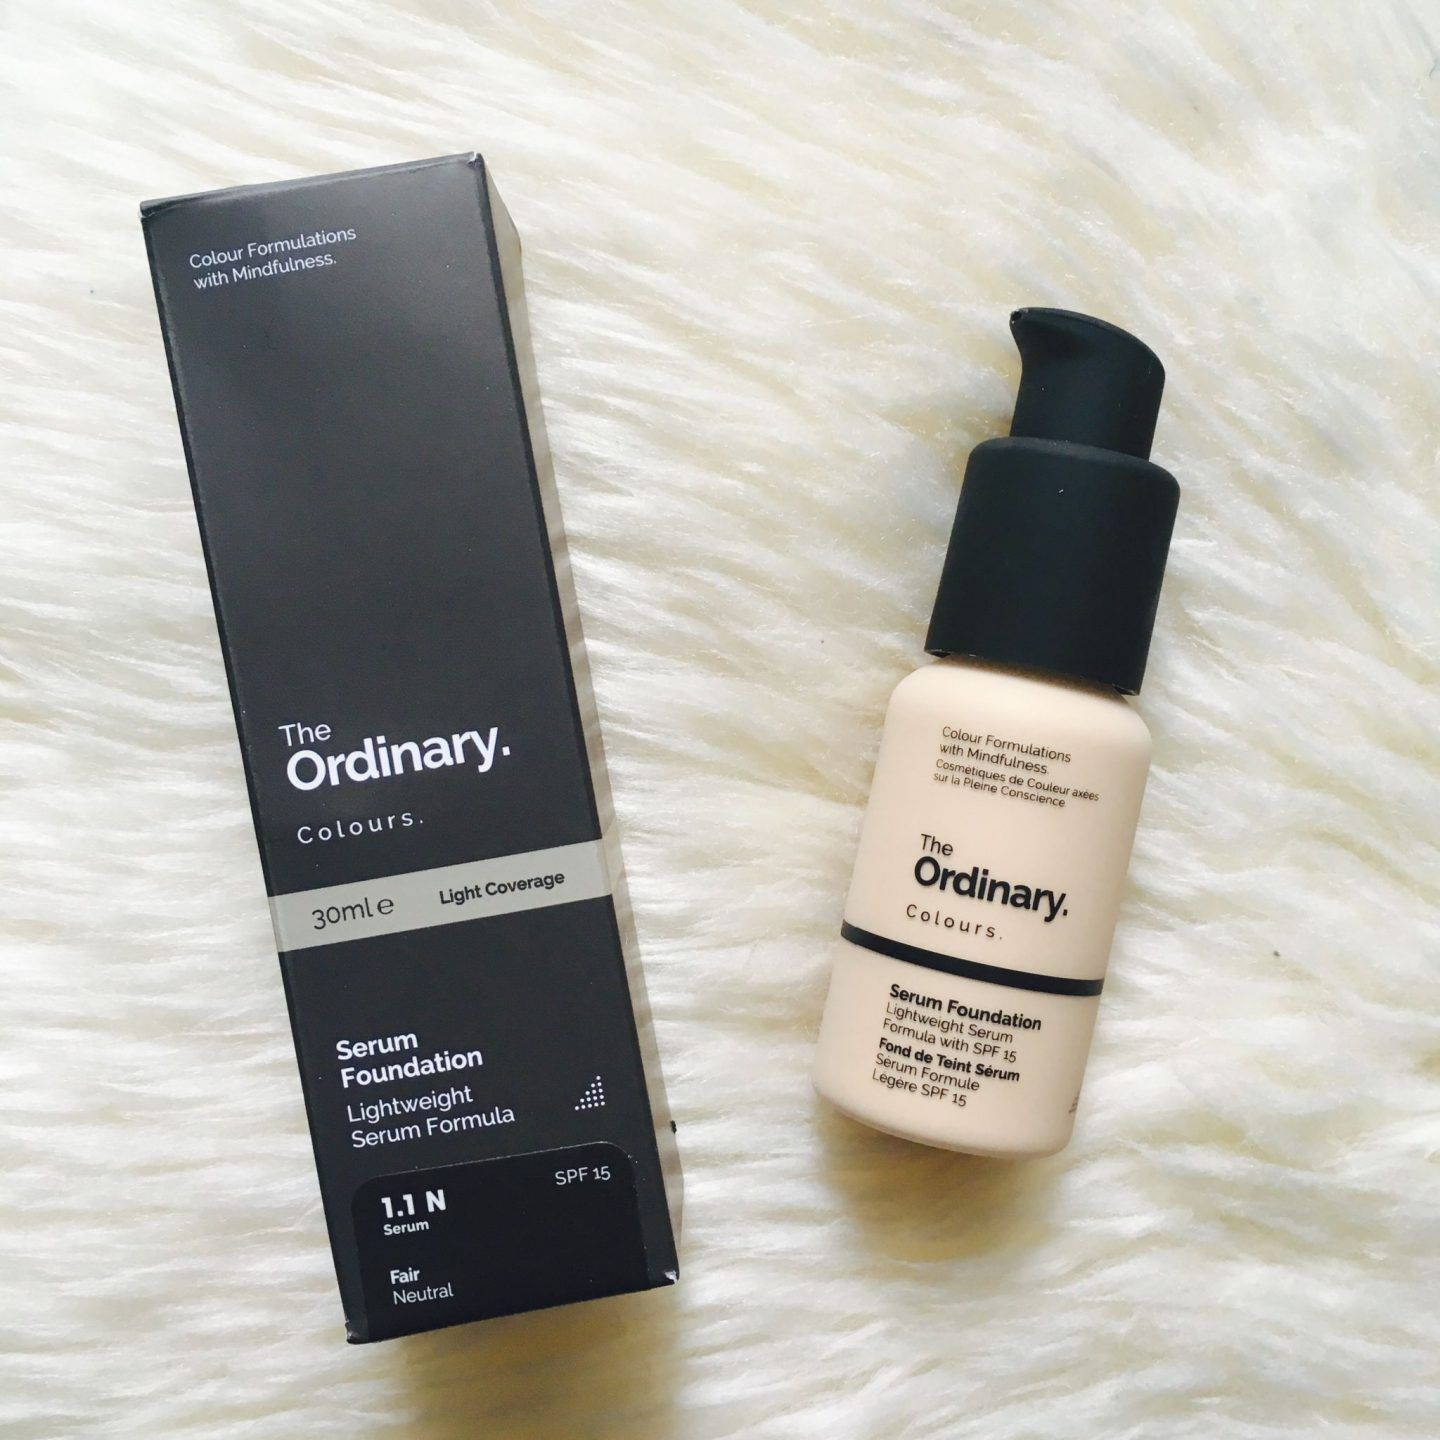 The Ordinary Colours Serum Foundation Review www